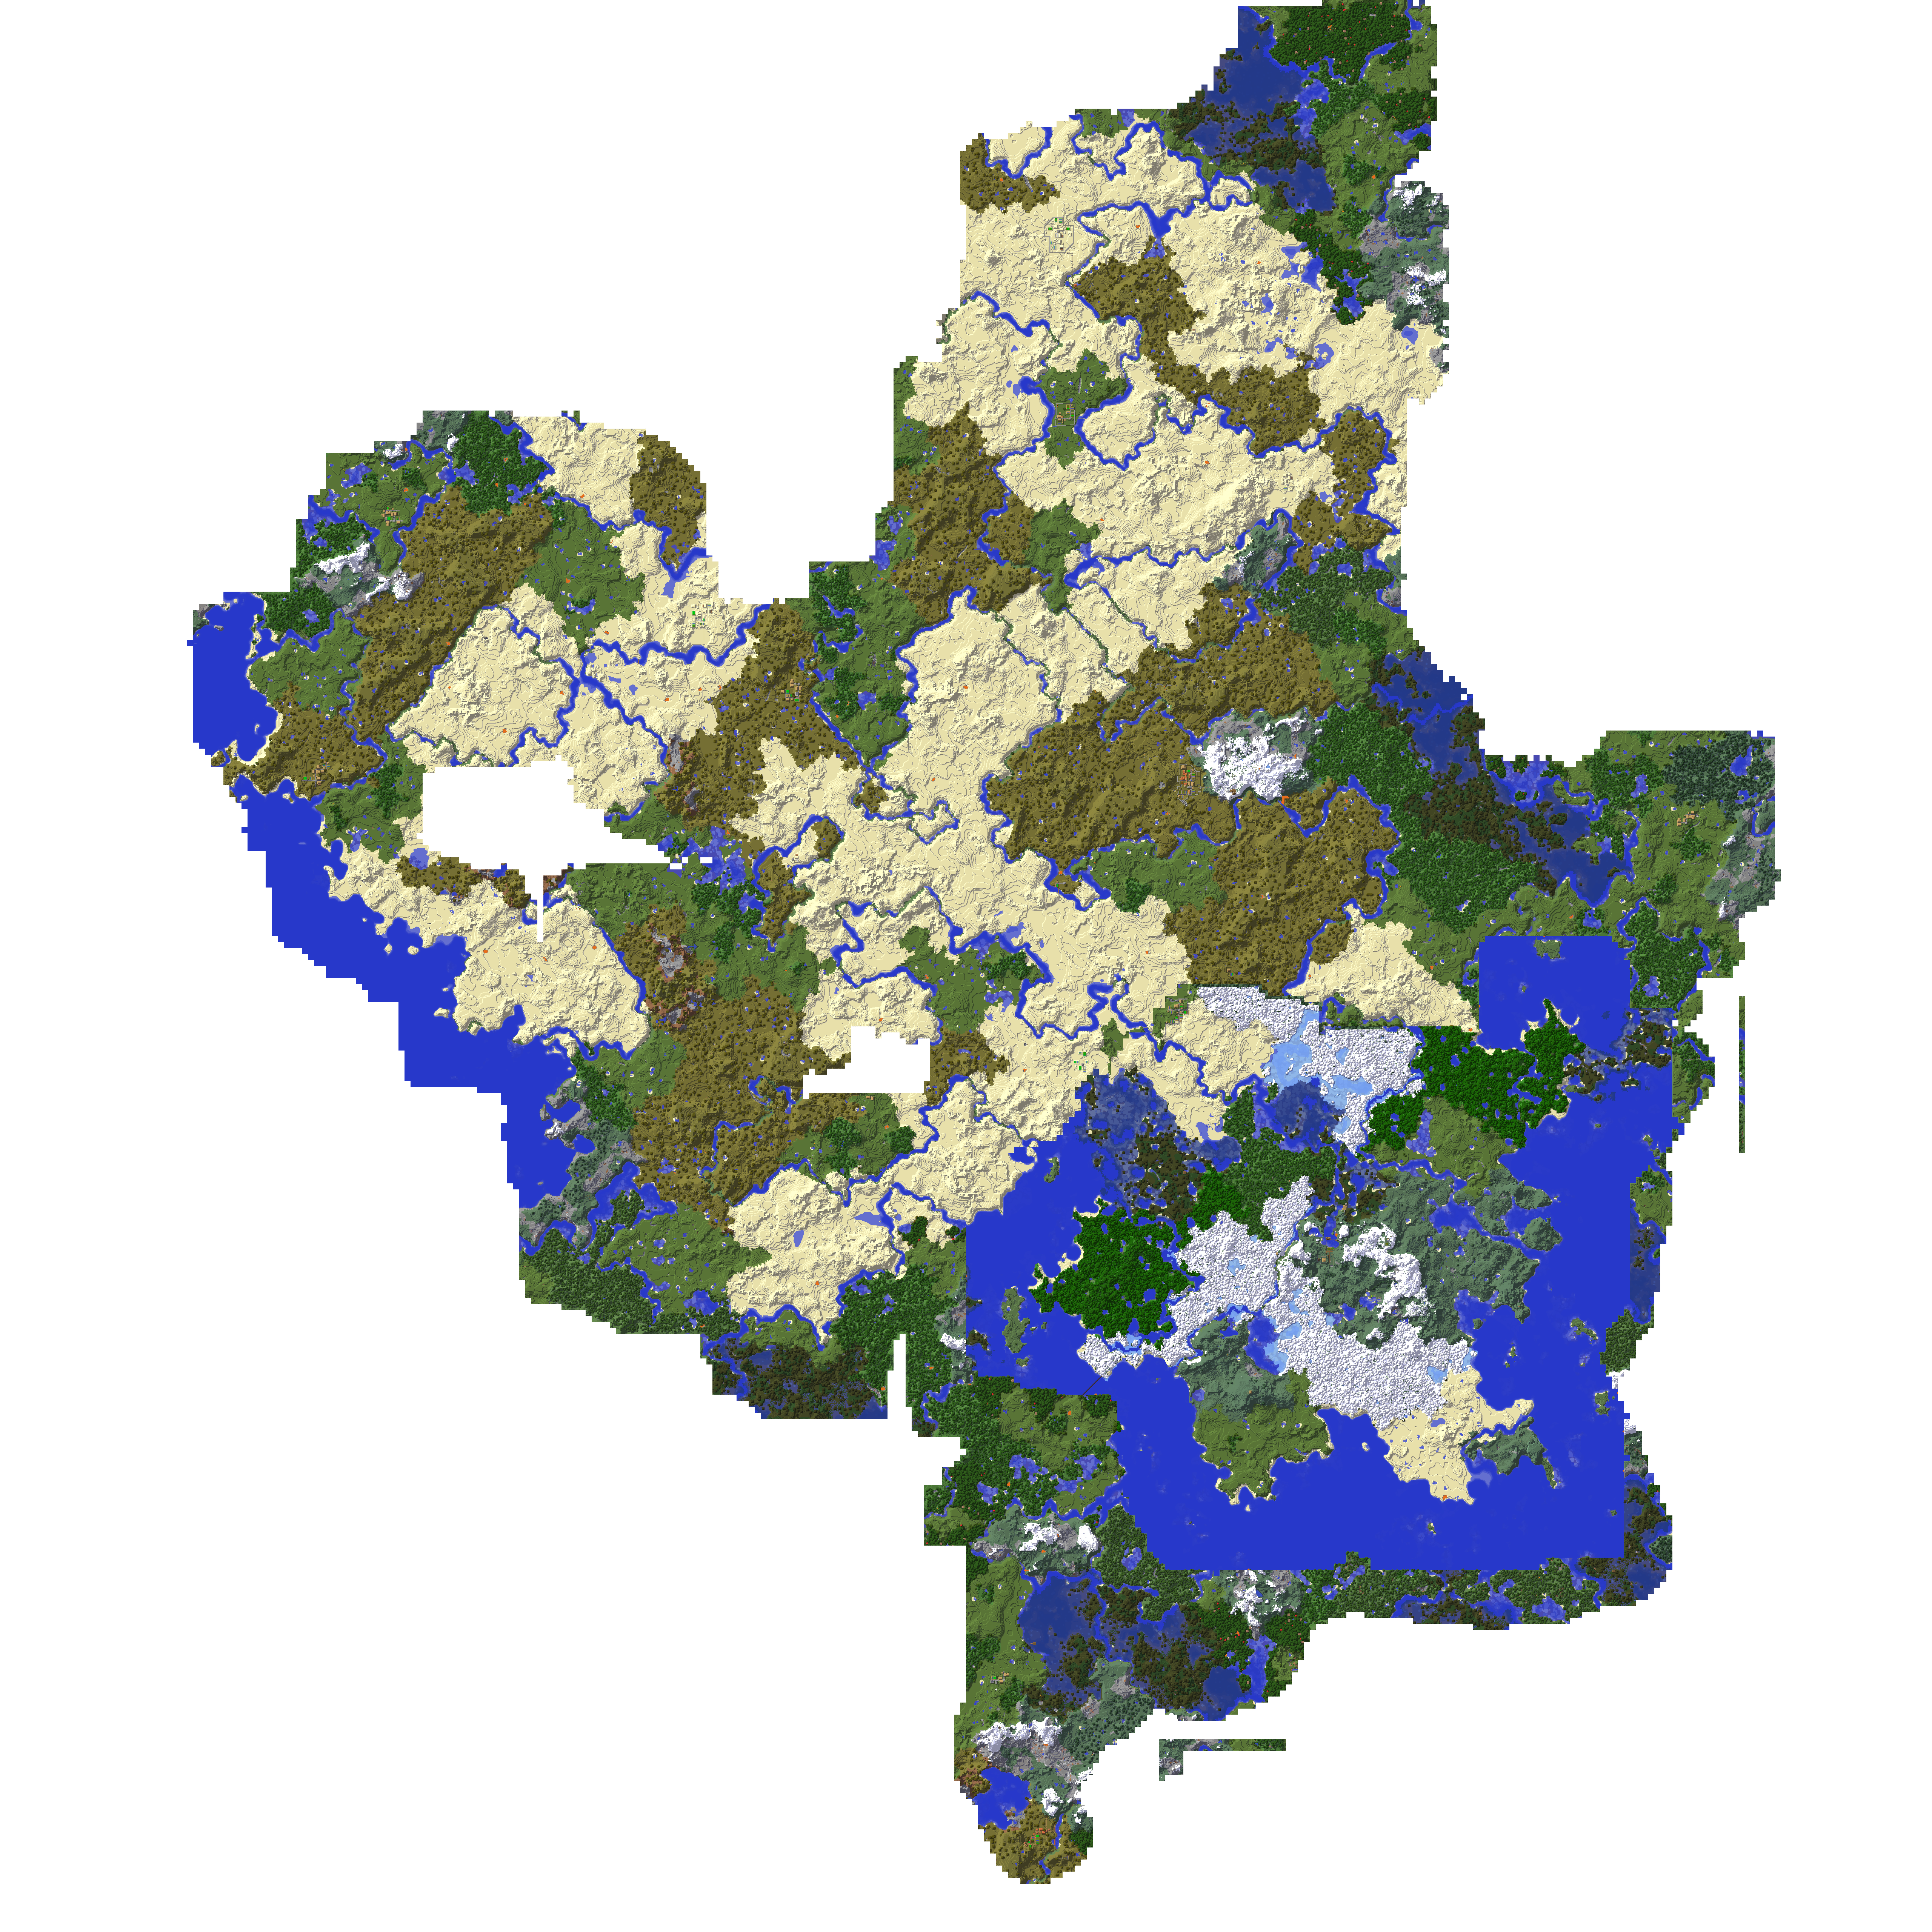 Second, The Second Vanilla Minecraft Map I Played, Again Years Old But Not  Quite As Old. My Intent Was To Start Fresh But With More Experience Playing  The ...